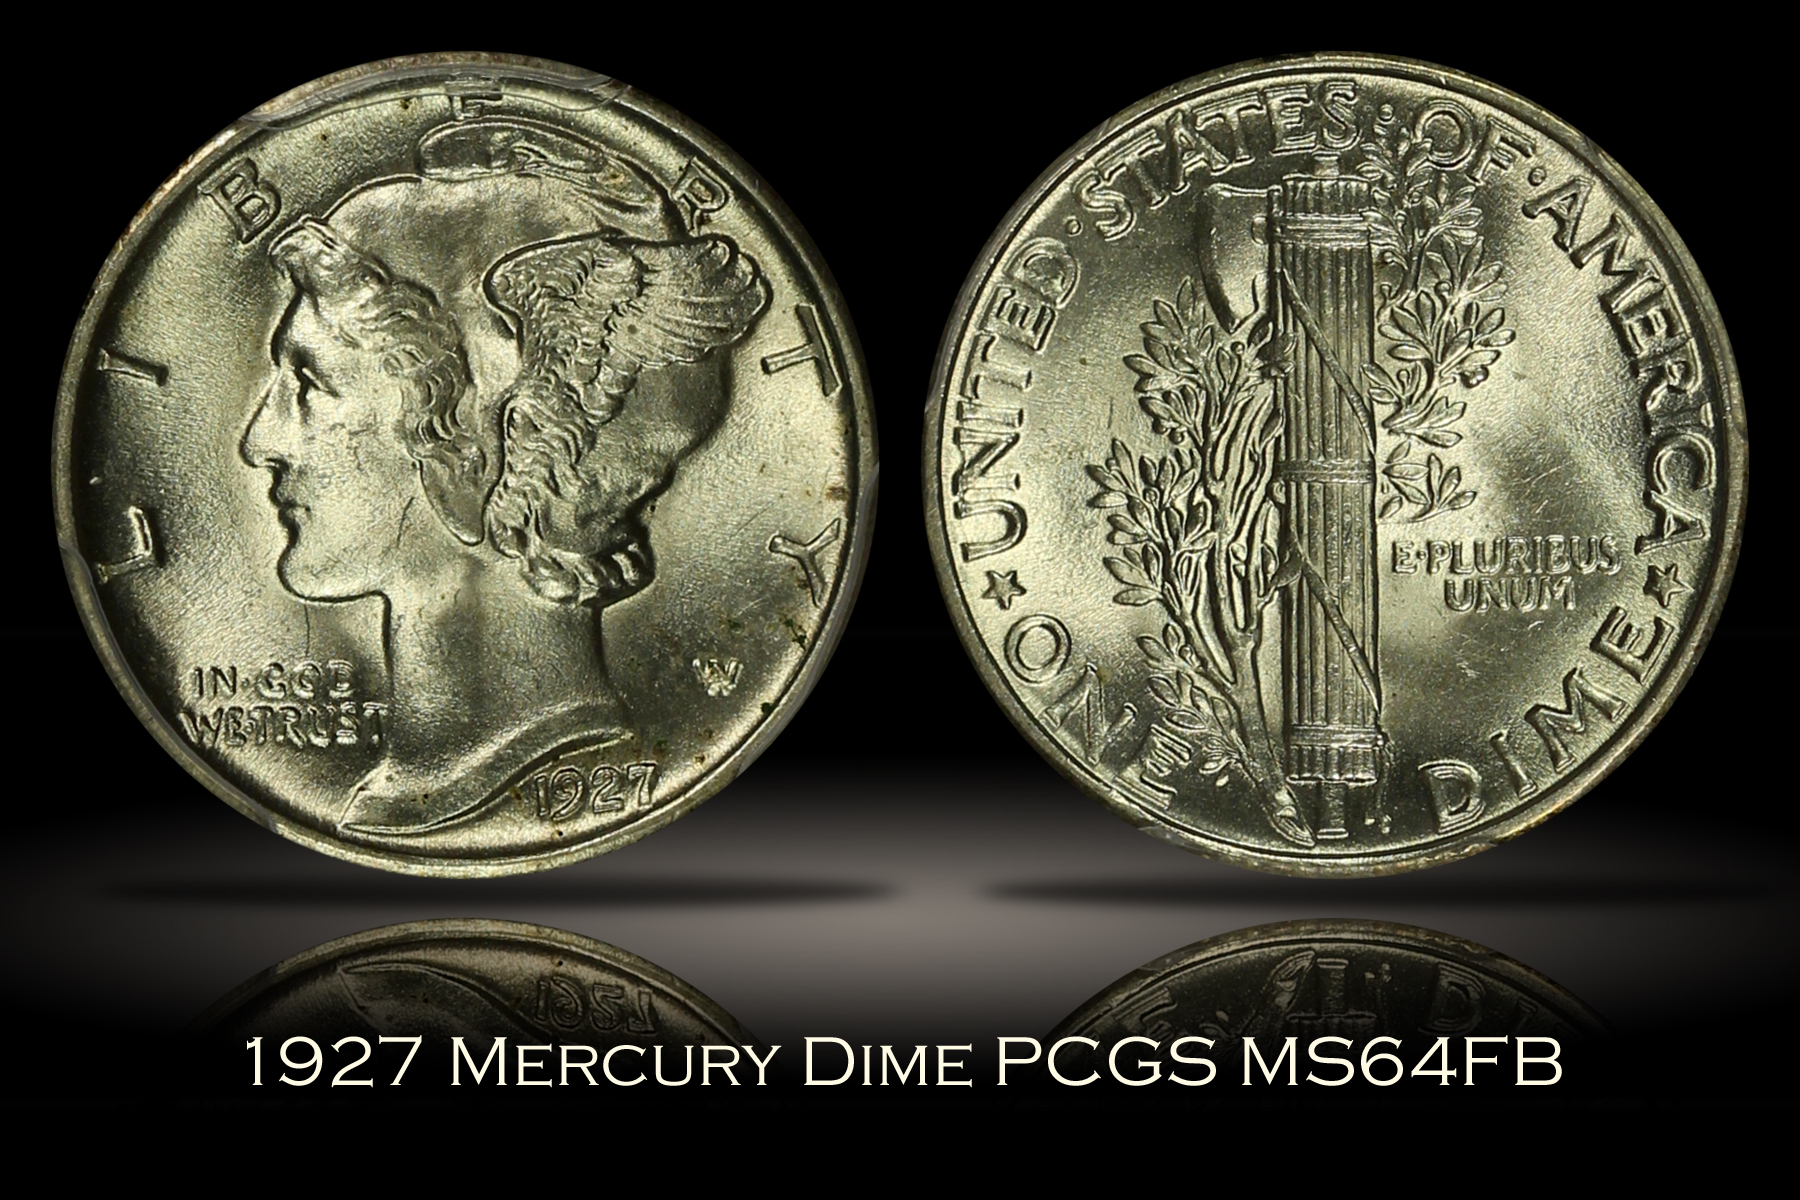 1927 Mercury Dime PCGS MS64FB